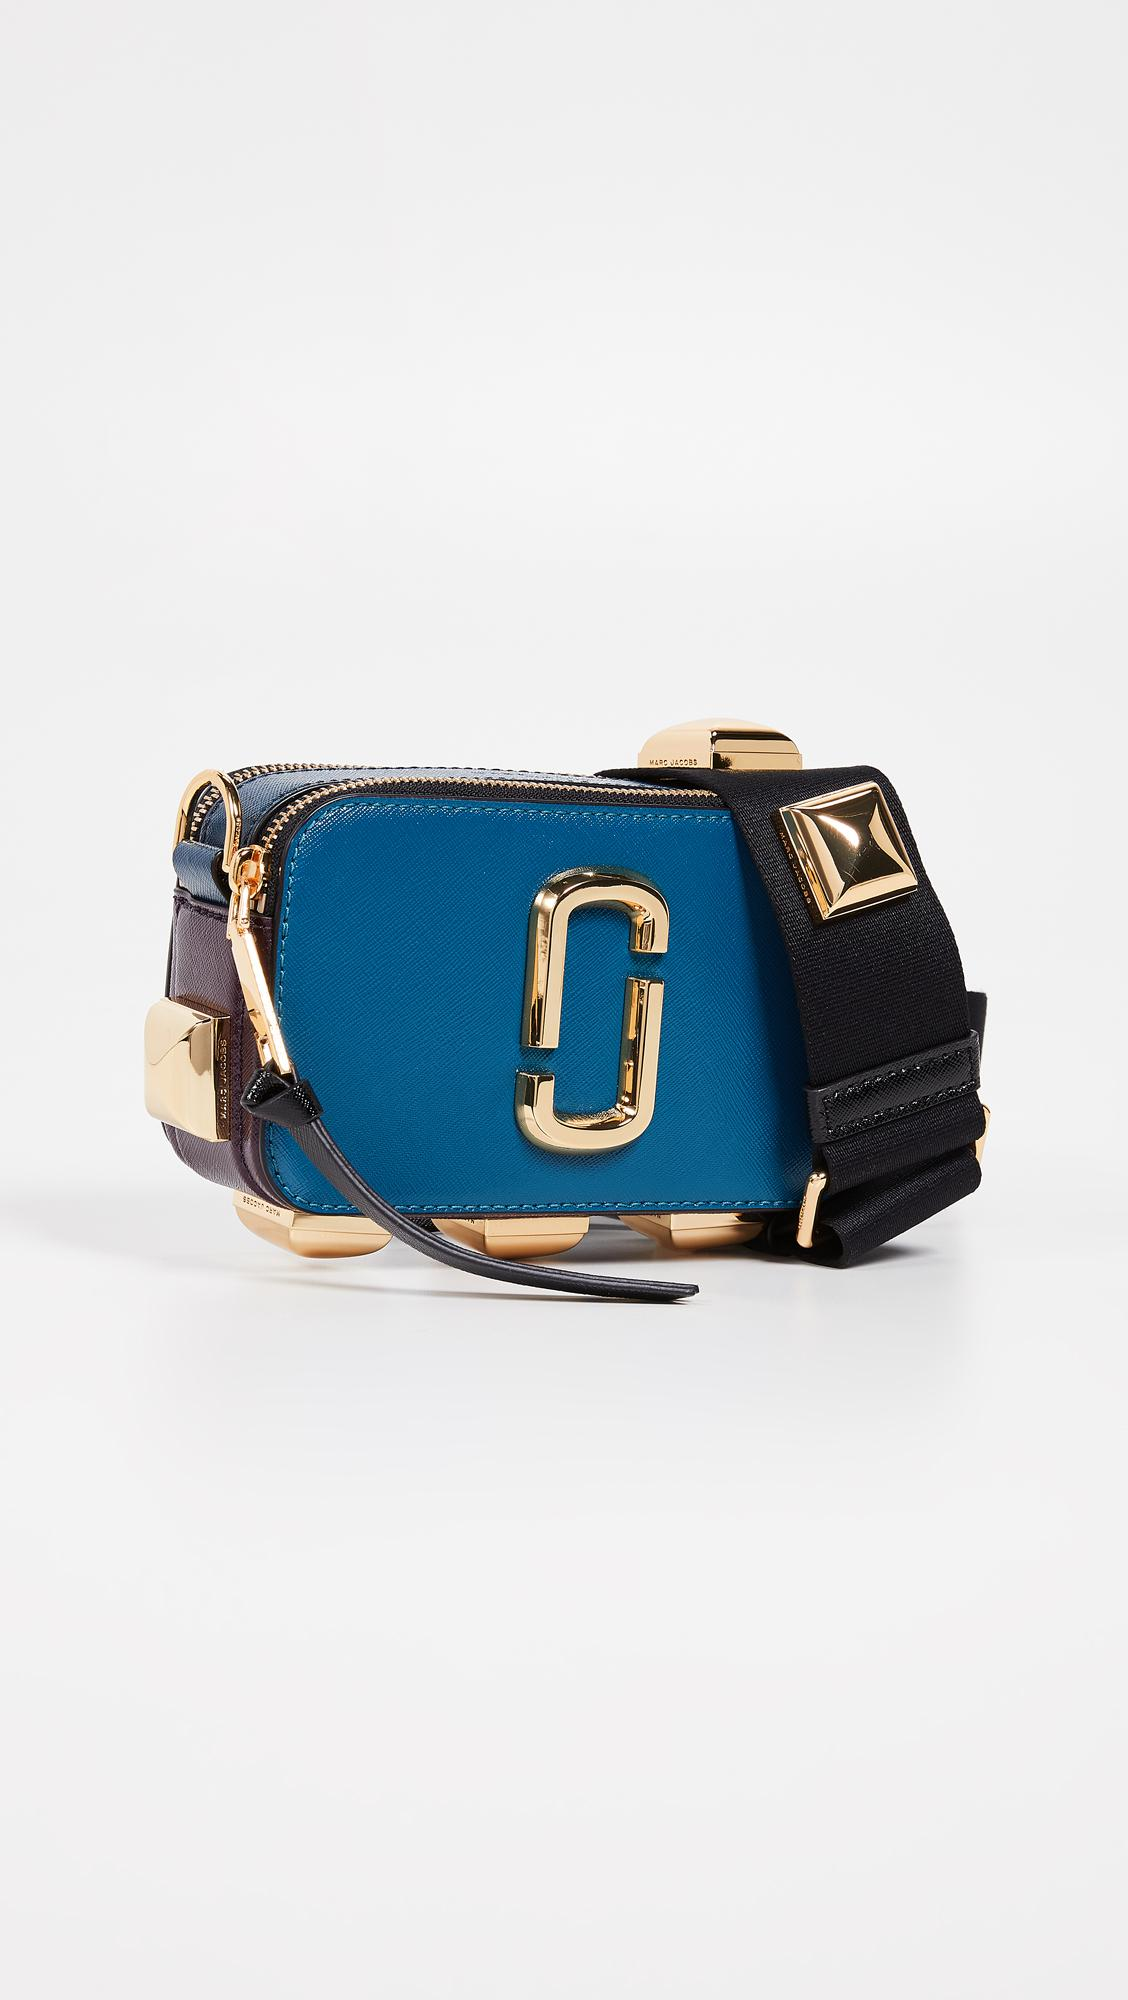 75199c6d3b1b Marc Jacobs - Blue Snapshot Studs Crossbody Bag - Lyst. View fullscreen